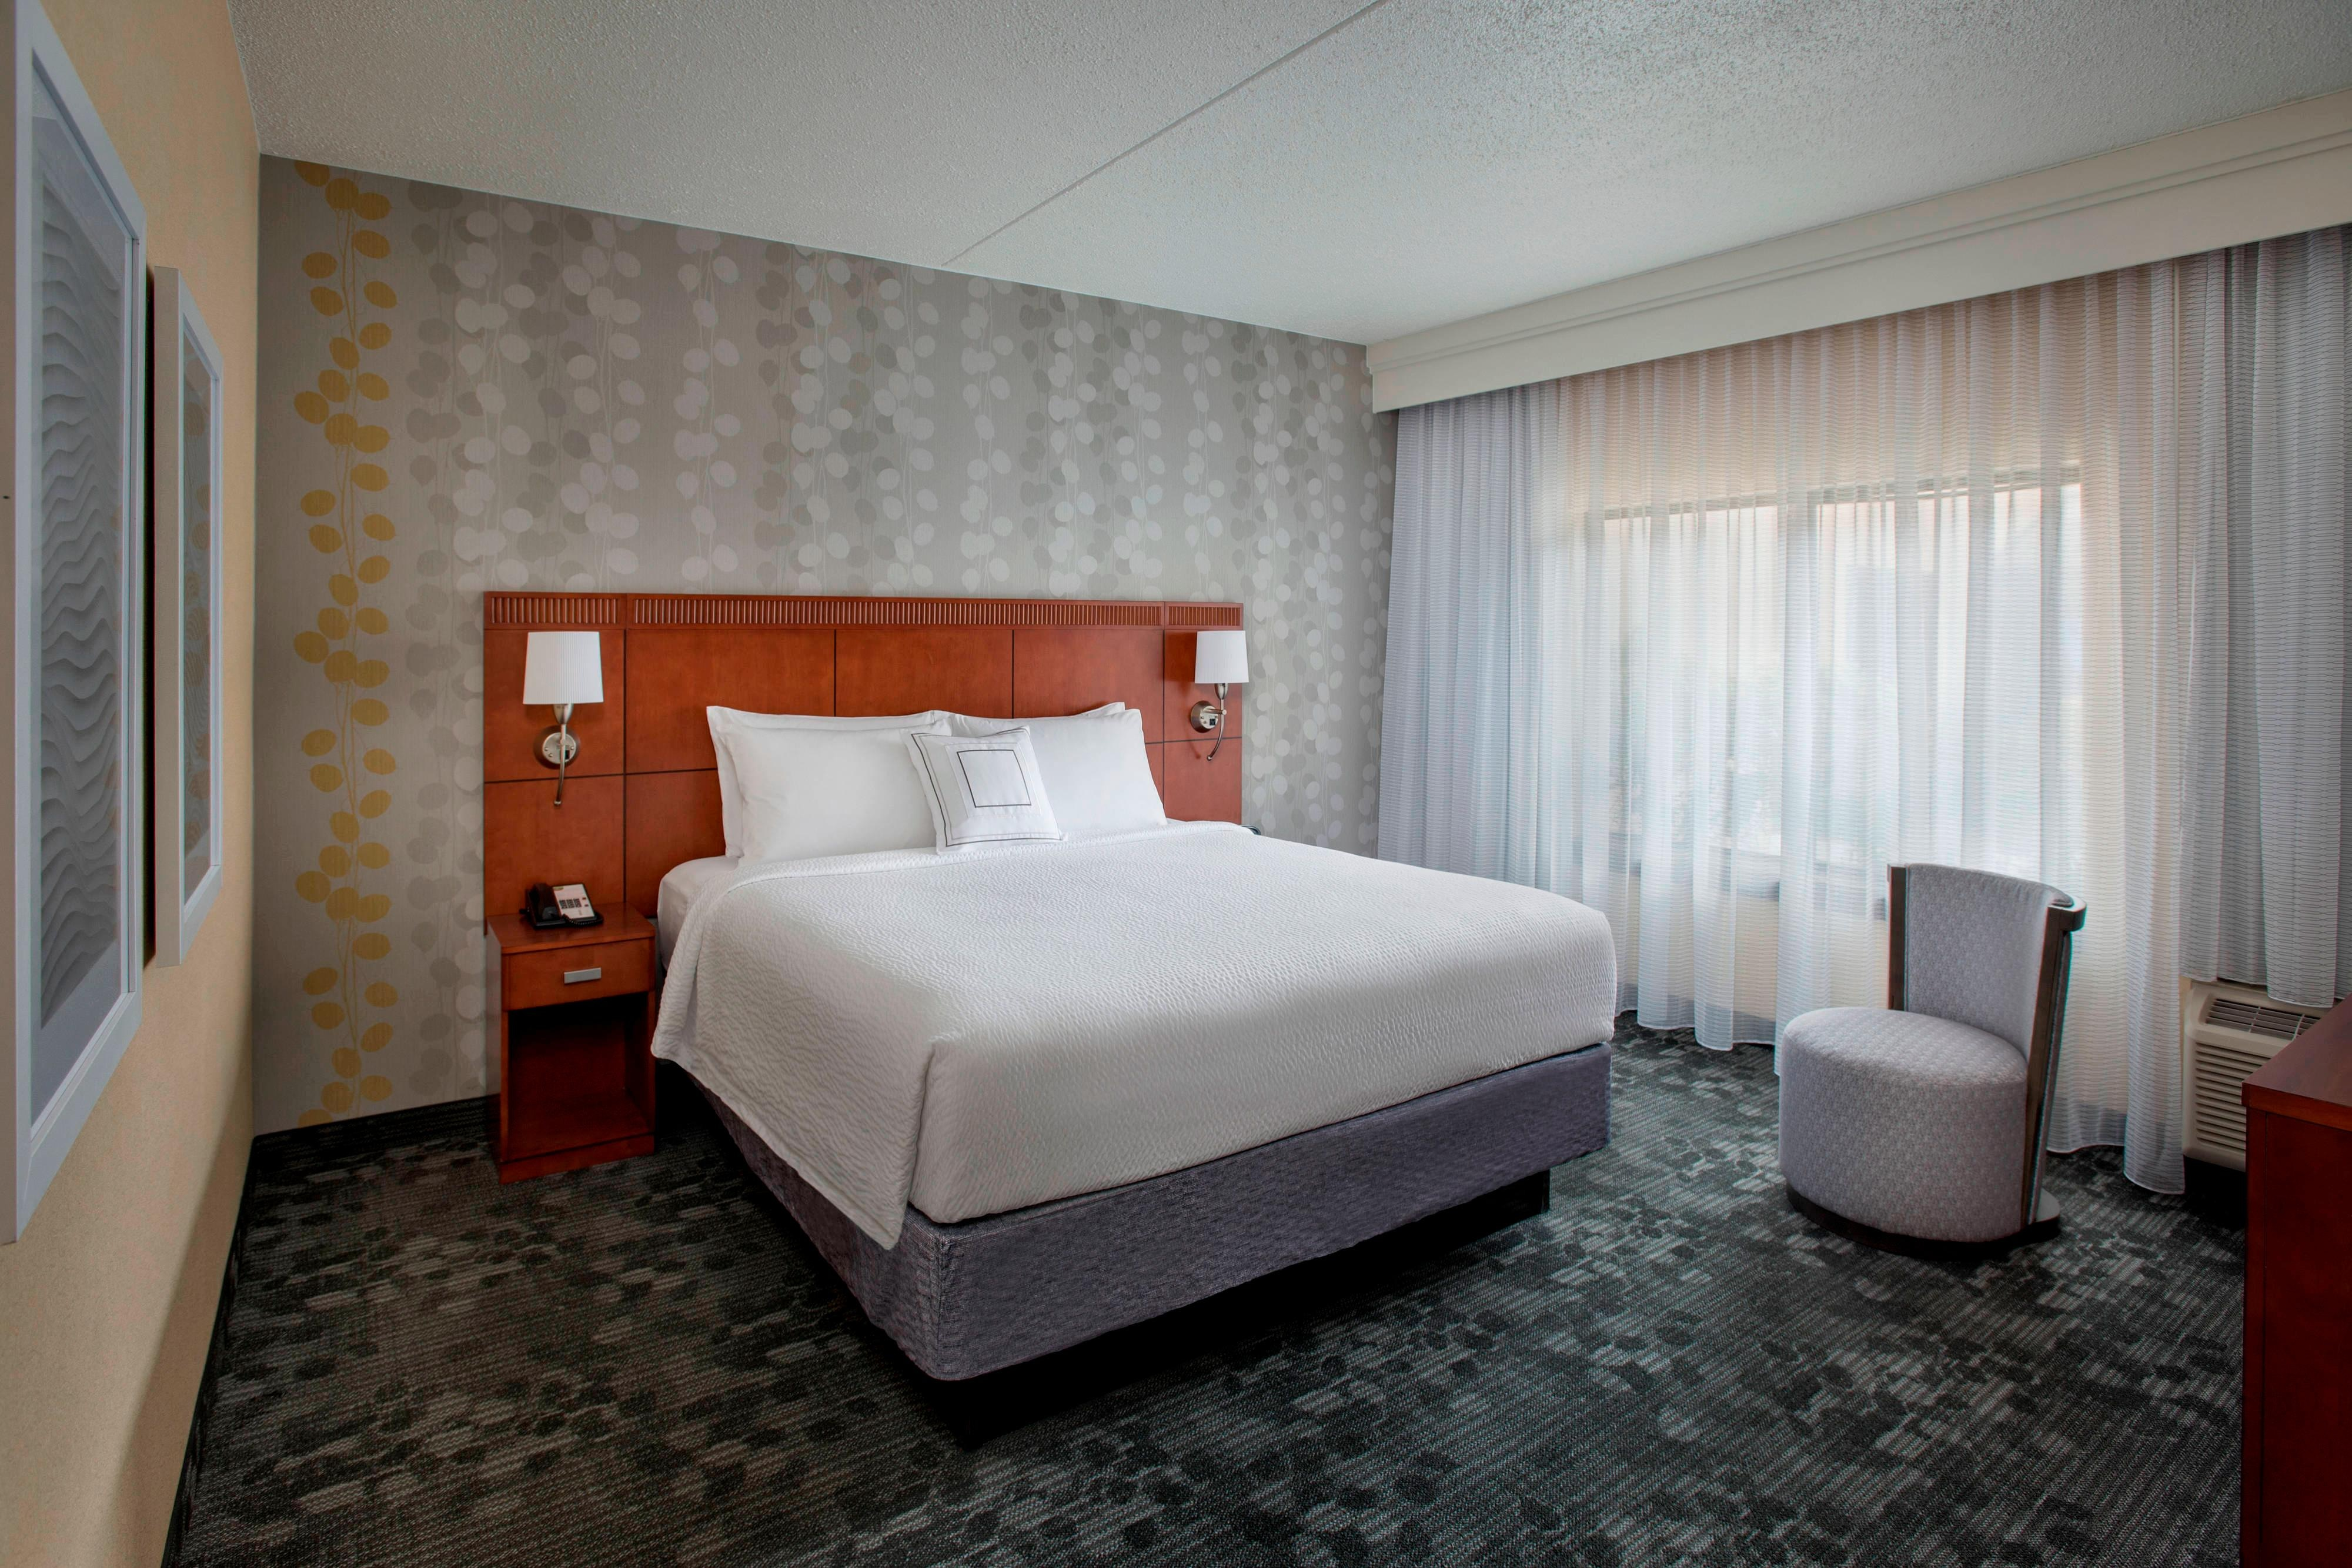 Hotels in andover ma courtyard boston andover - Hotels with 2 bedroom suites in boston ma ...